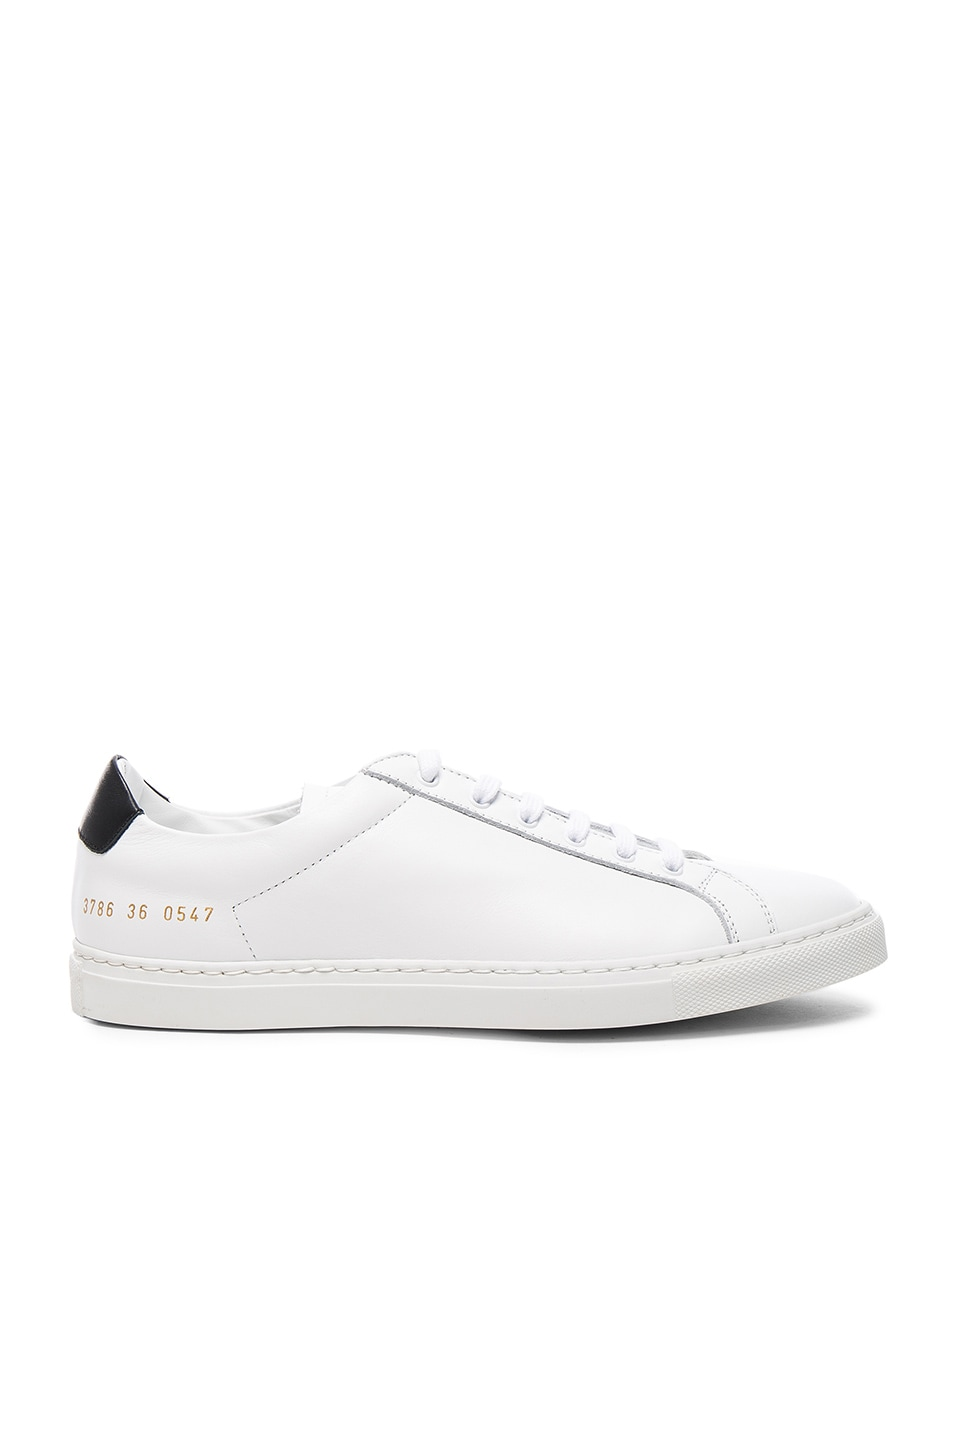 Image 1 of Common Projects Leather Achilles Retro Low in White & Black